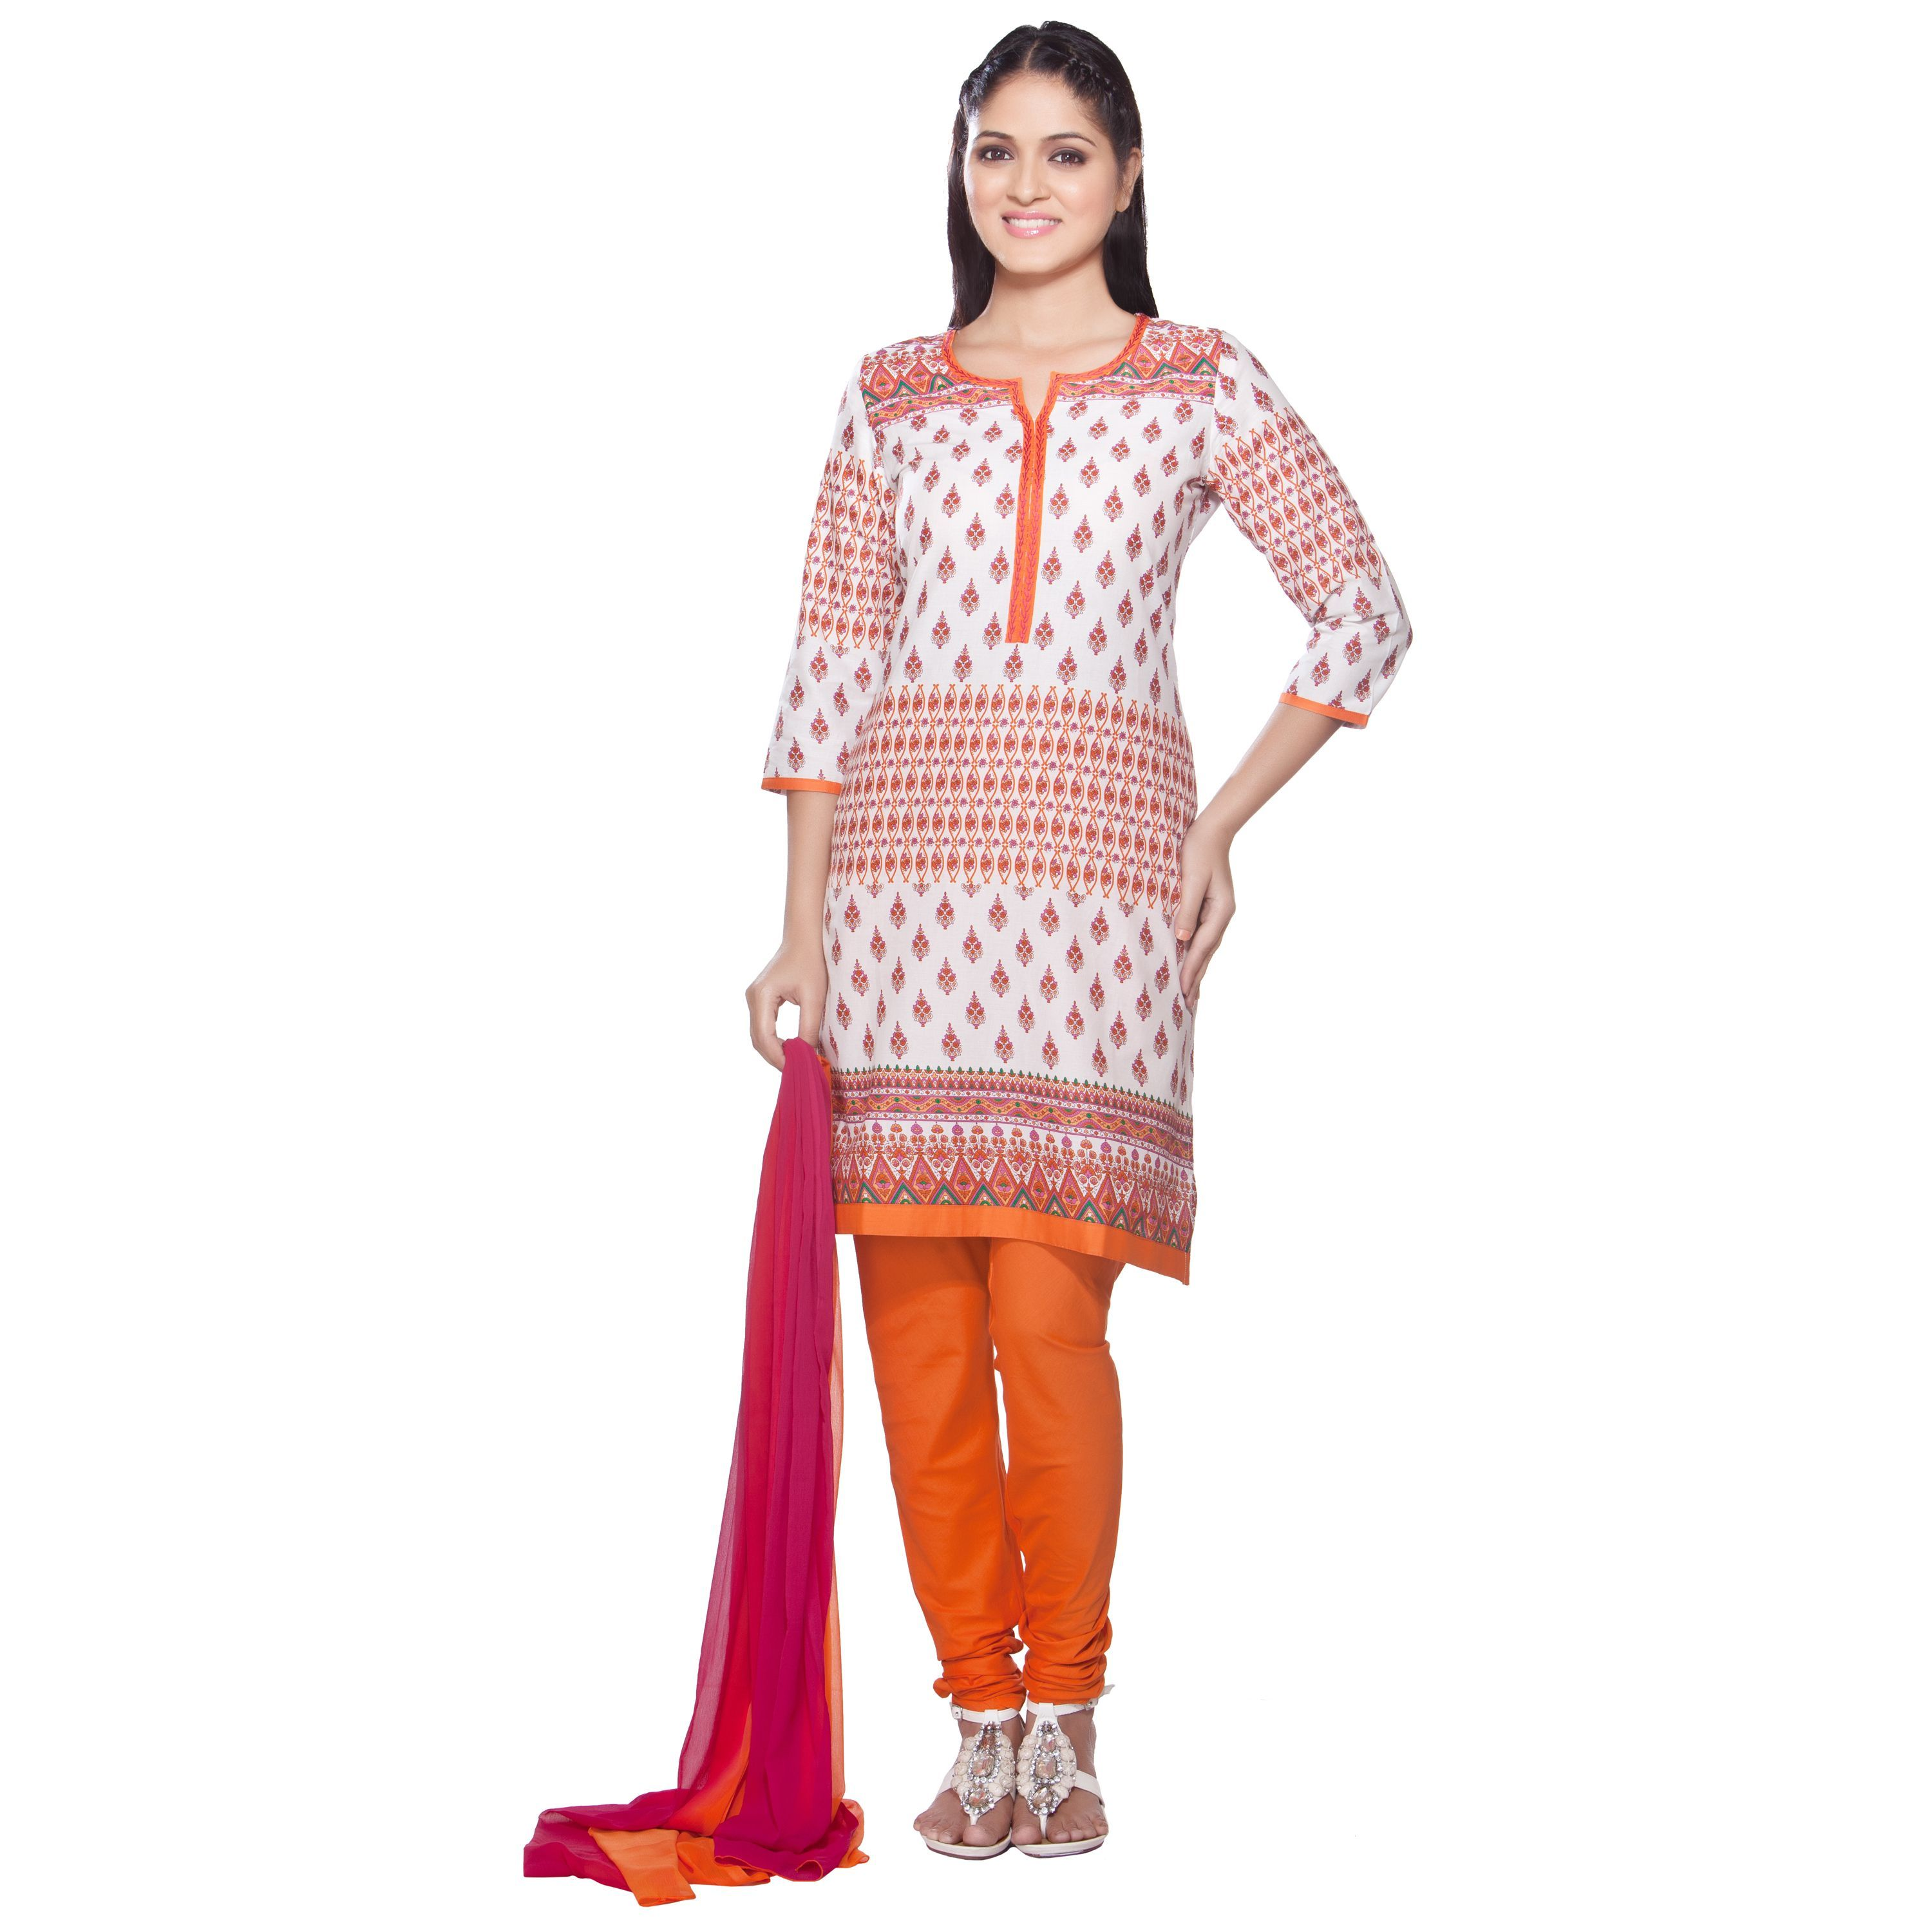 M - Womens Clothing Online Cheap Clothes 12